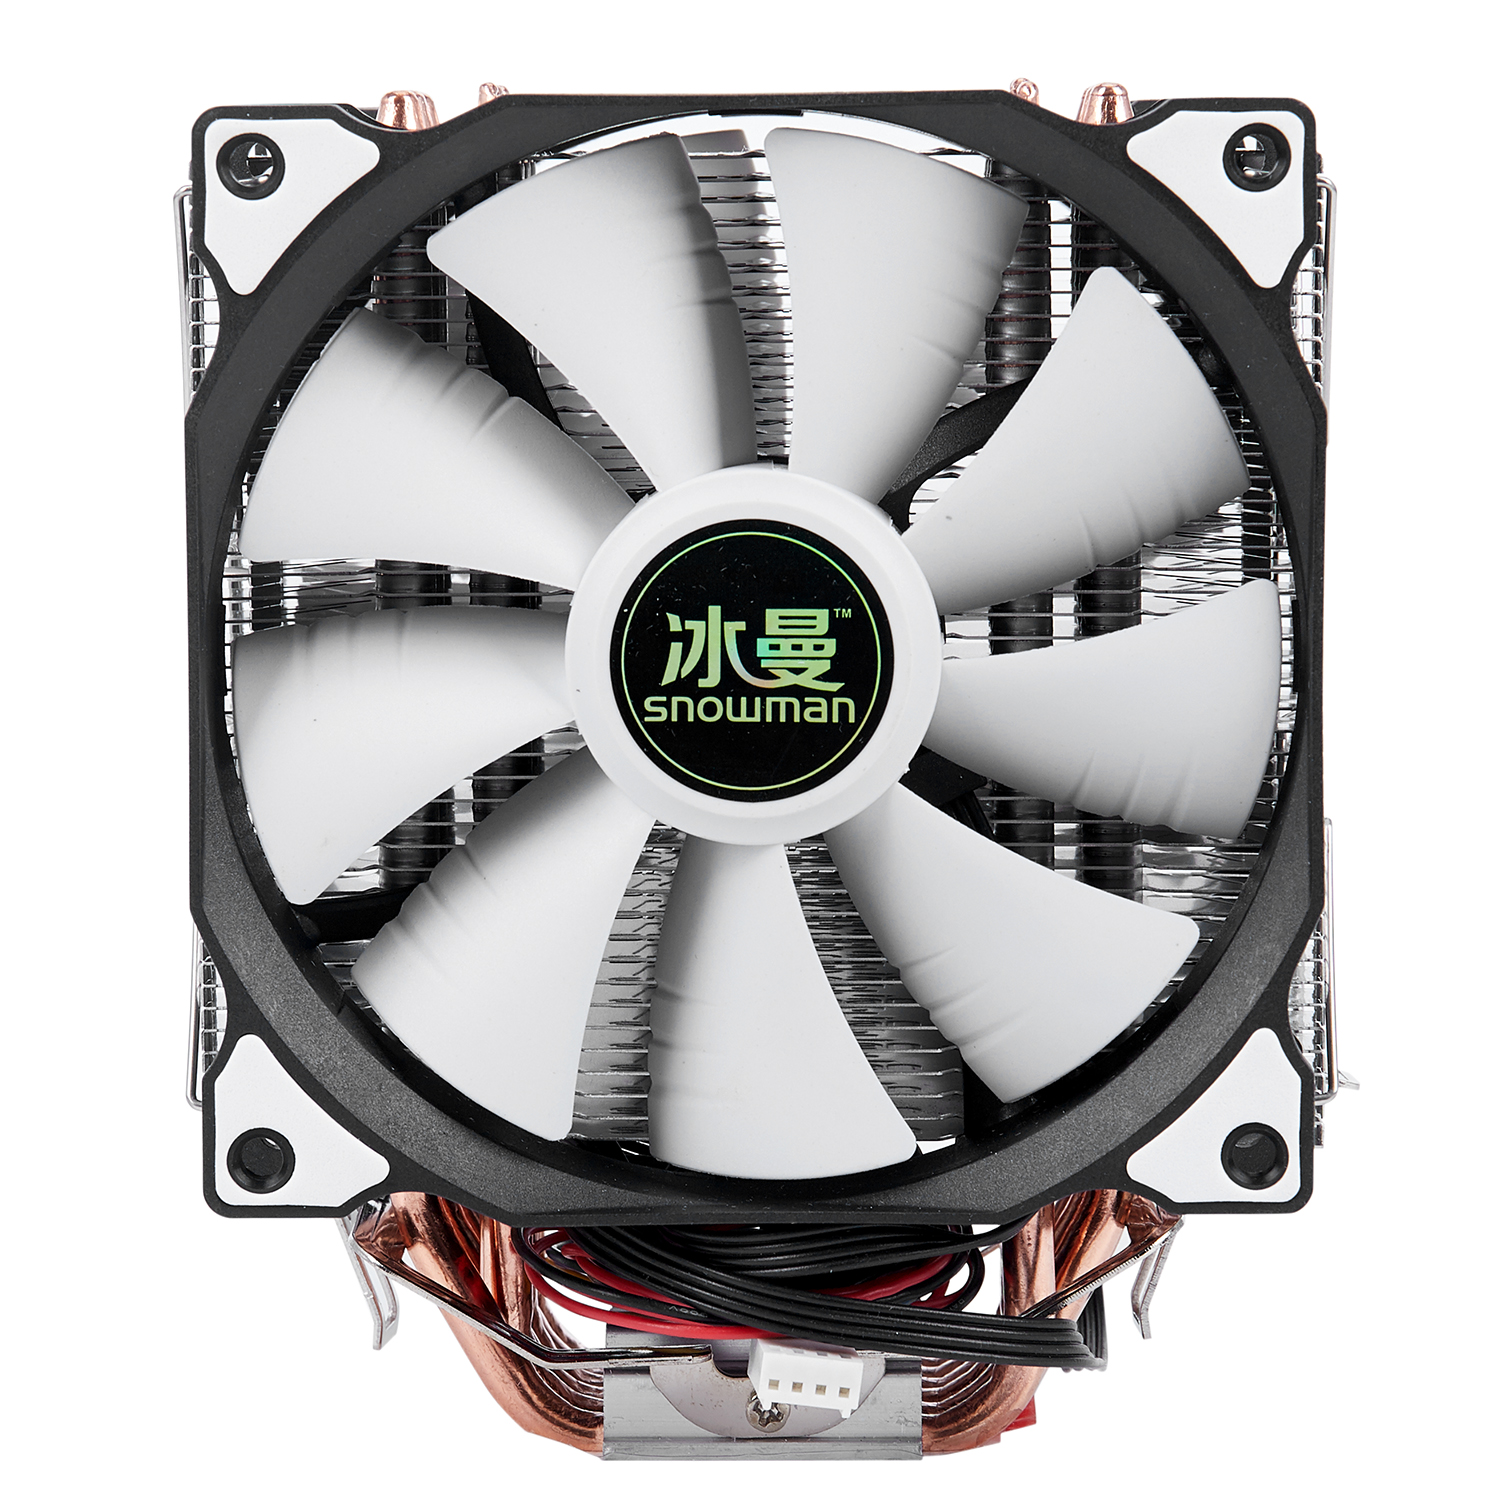 MagiDeal Dual-Tower Quiet CPU Cooling Fan 4 Pin Wire 12 LED RGB CPU Cooler